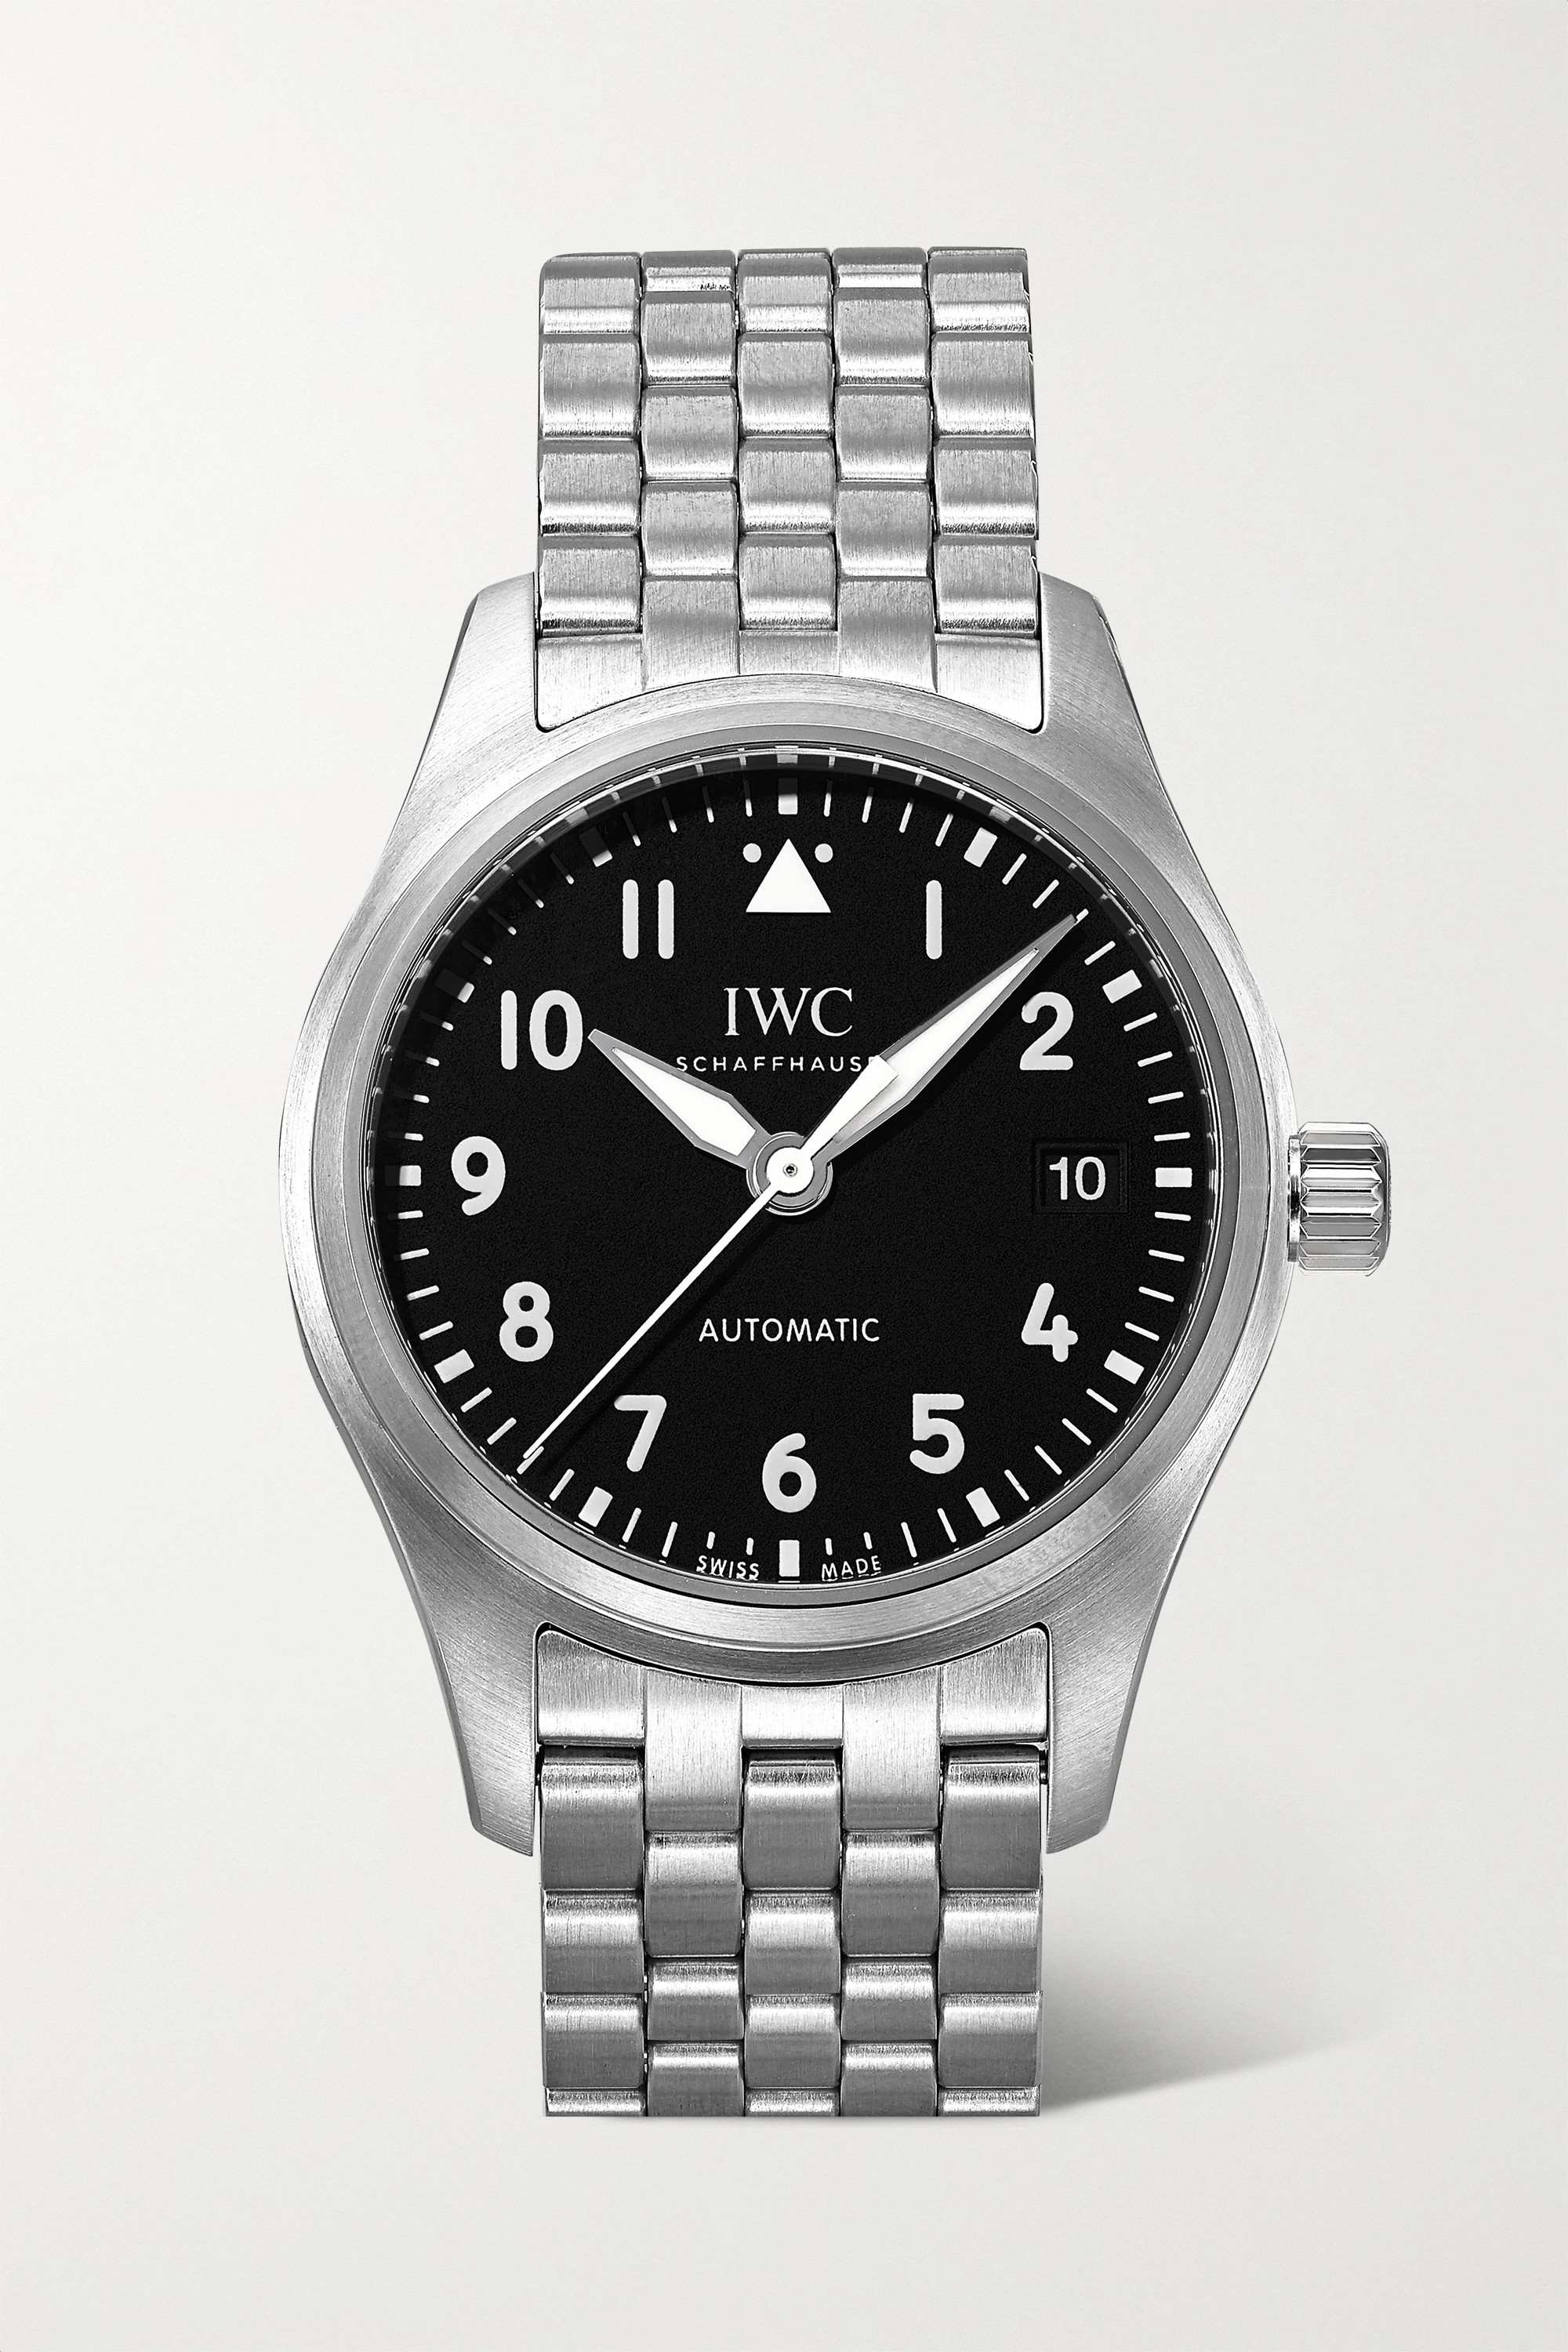 IWC SCHAFFHAUSEN Pilot's Automatic 36mm stainless steel watch